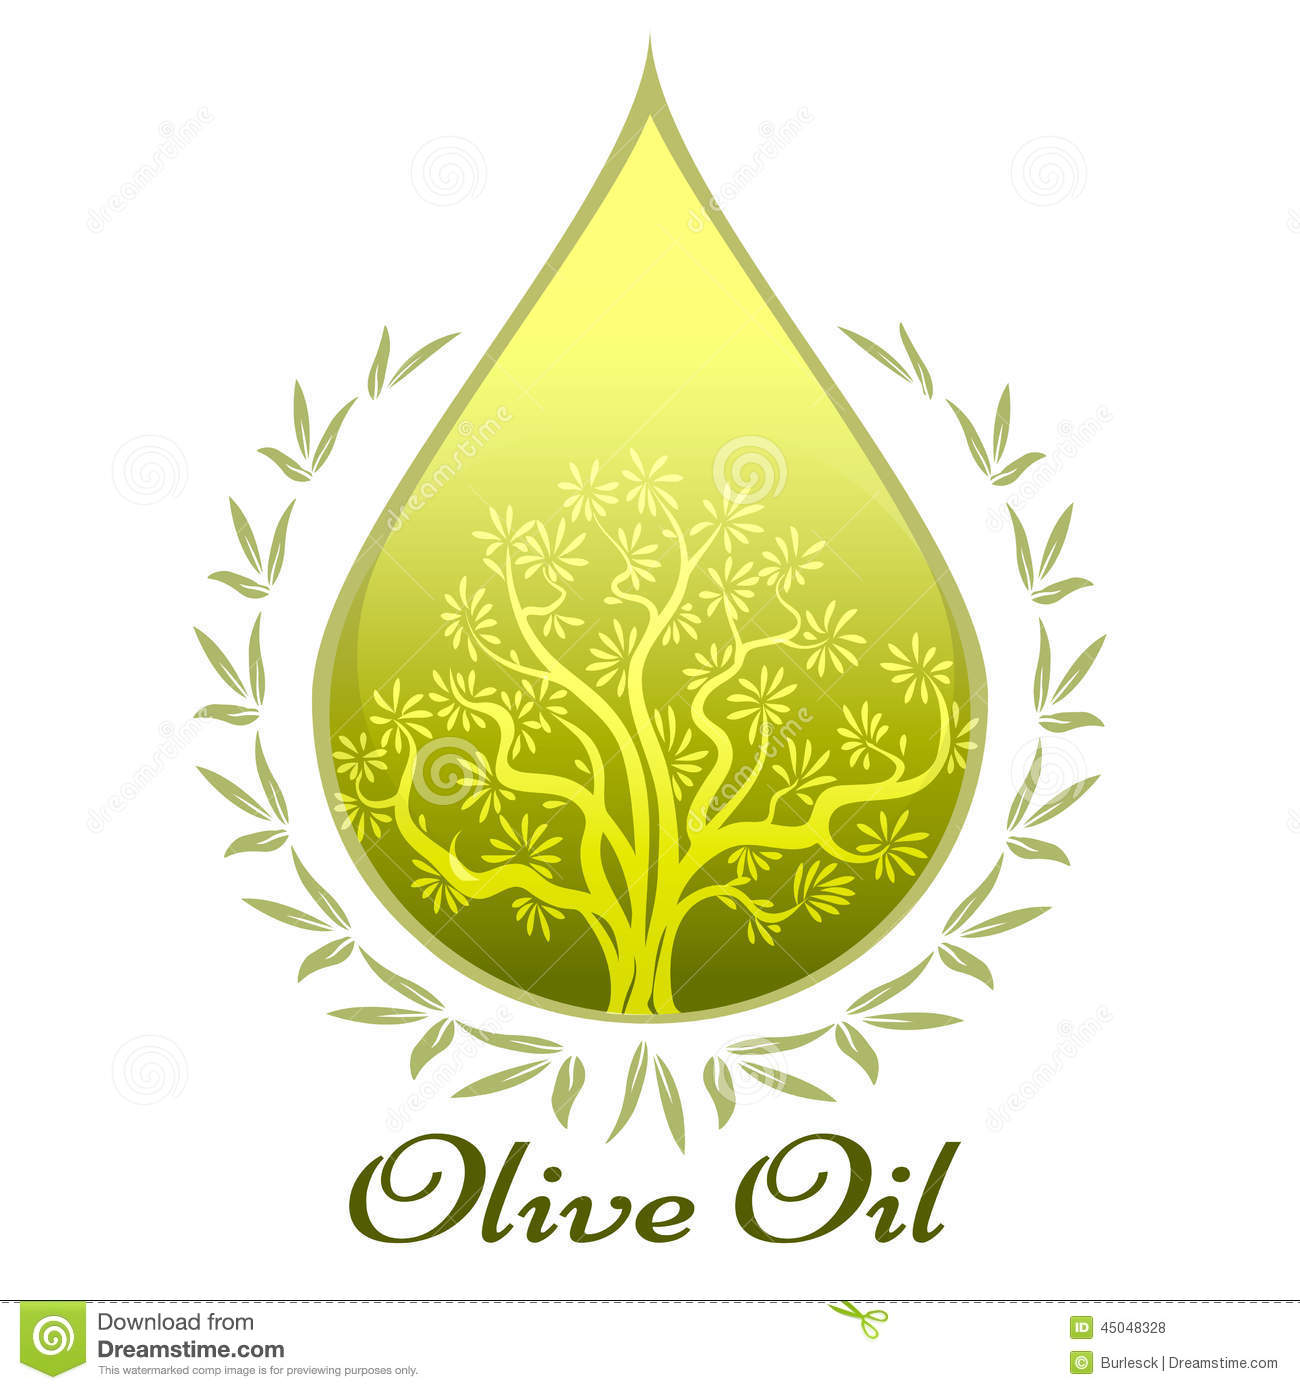 Where can I find the best Margaret River olive oil?